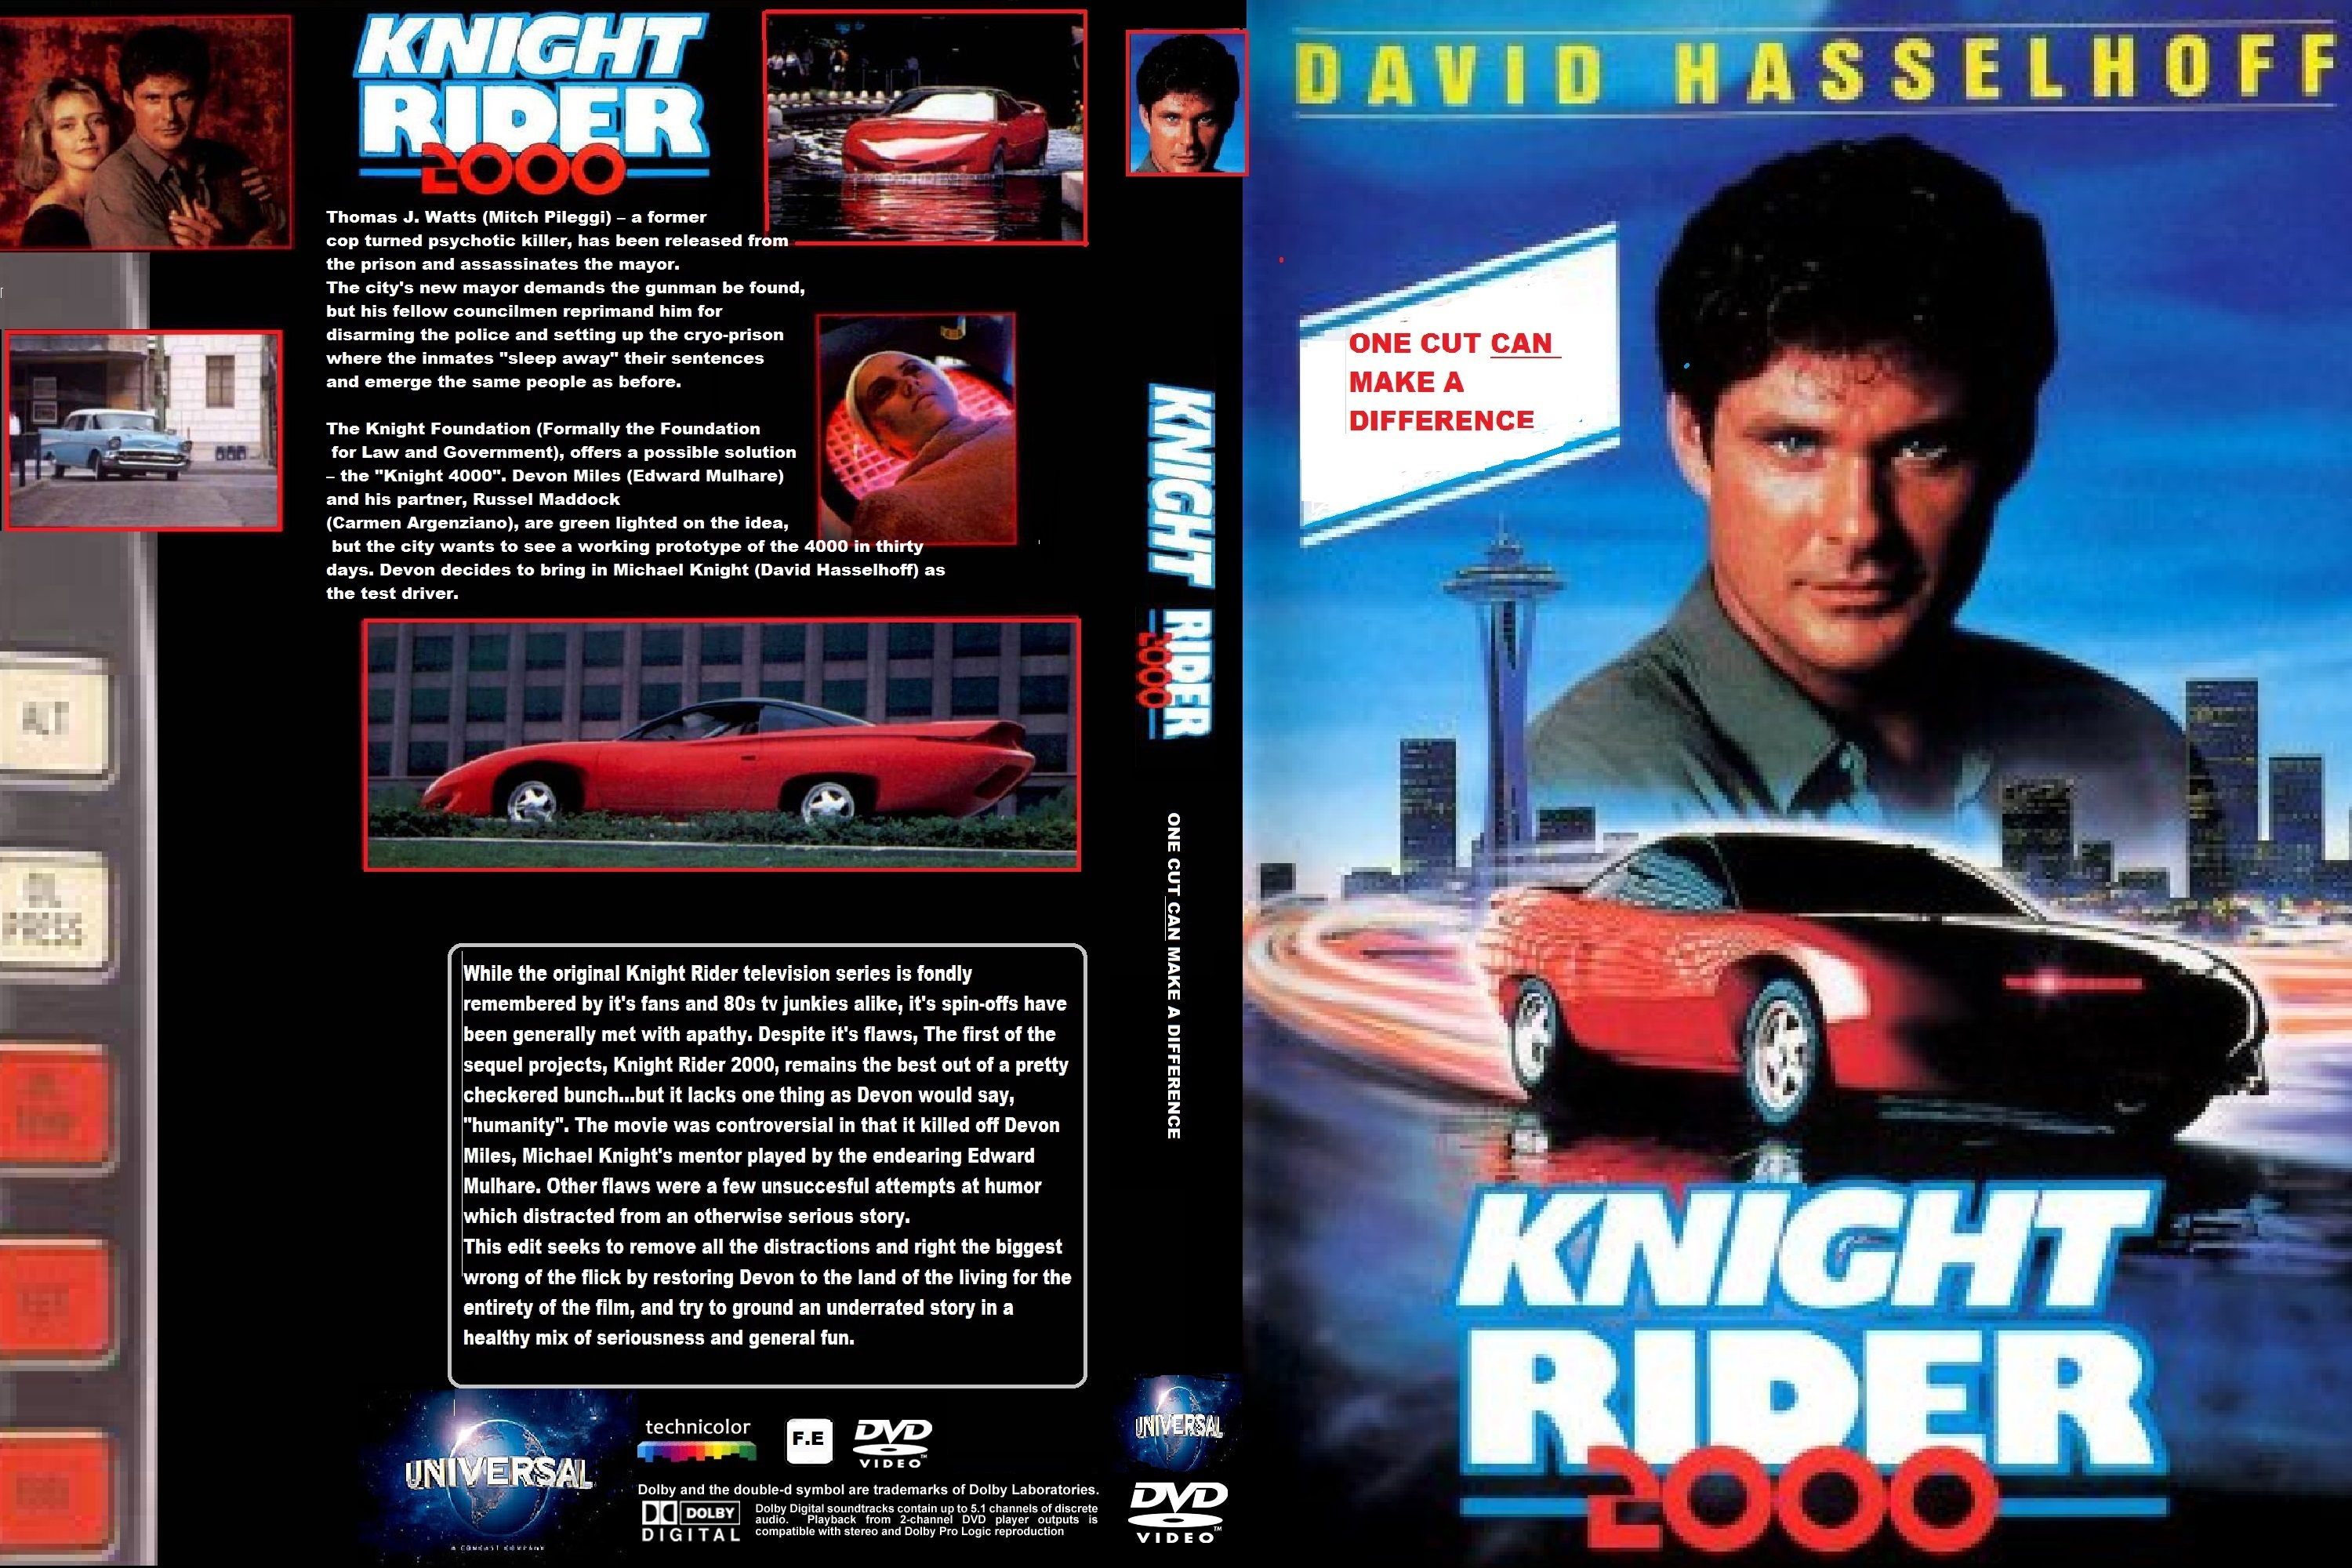 Knight Rider 2000: One Cut CAN Make A Difference by